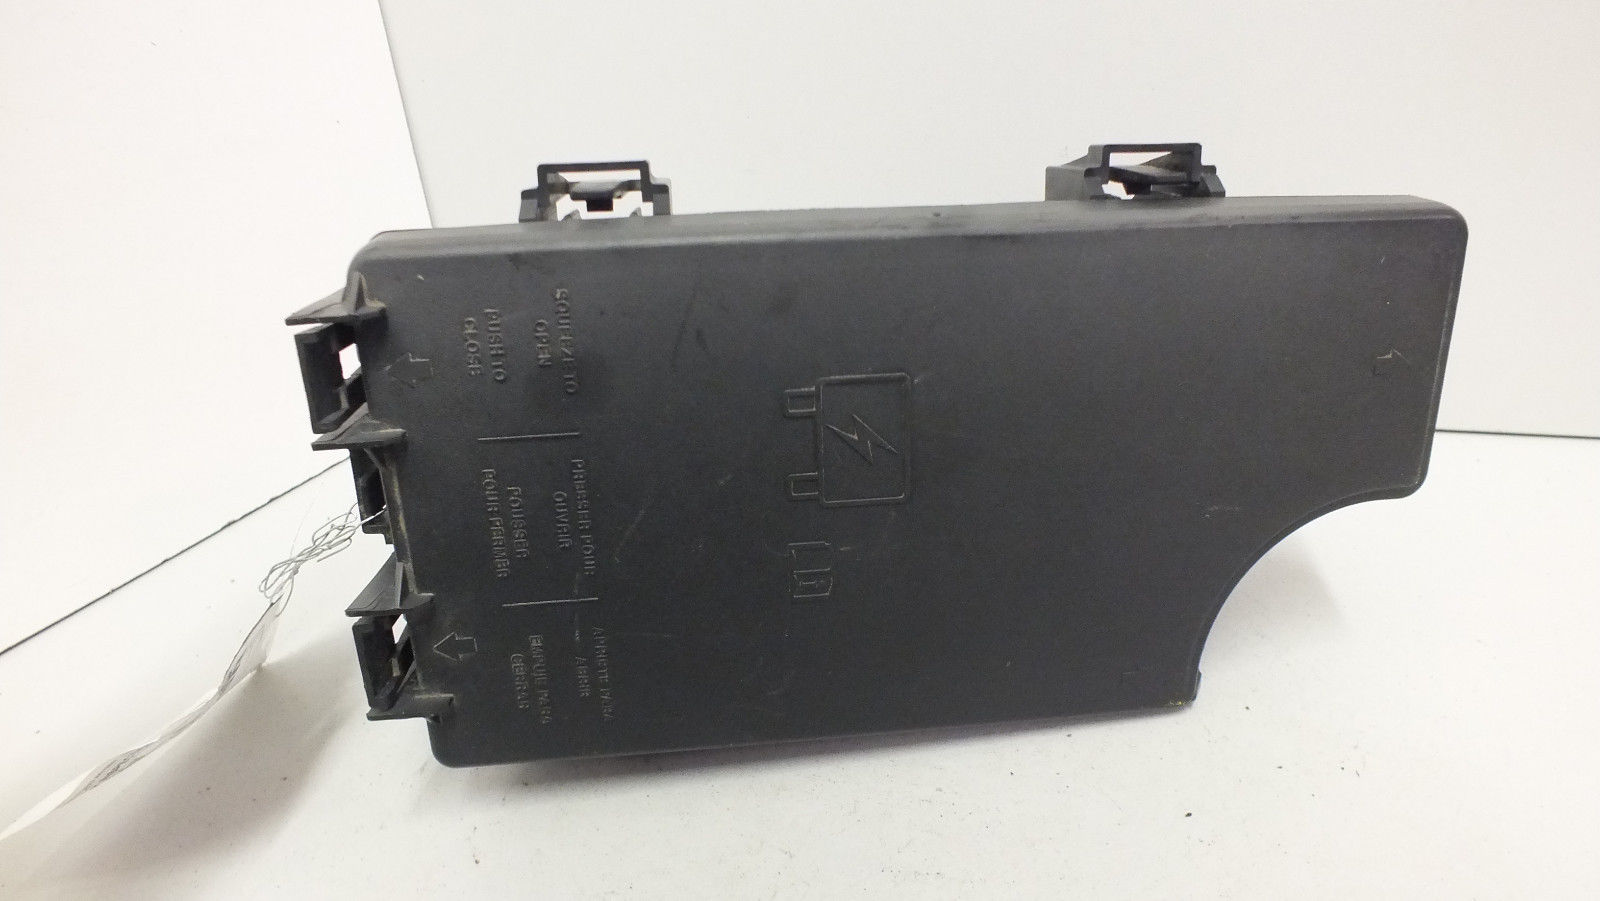 2011 Chrysler 200 Convertible Fuse Box Electrical Wiring Diagrams Mitsubishi Galant 12 13 14 3 6l Engine Compartment